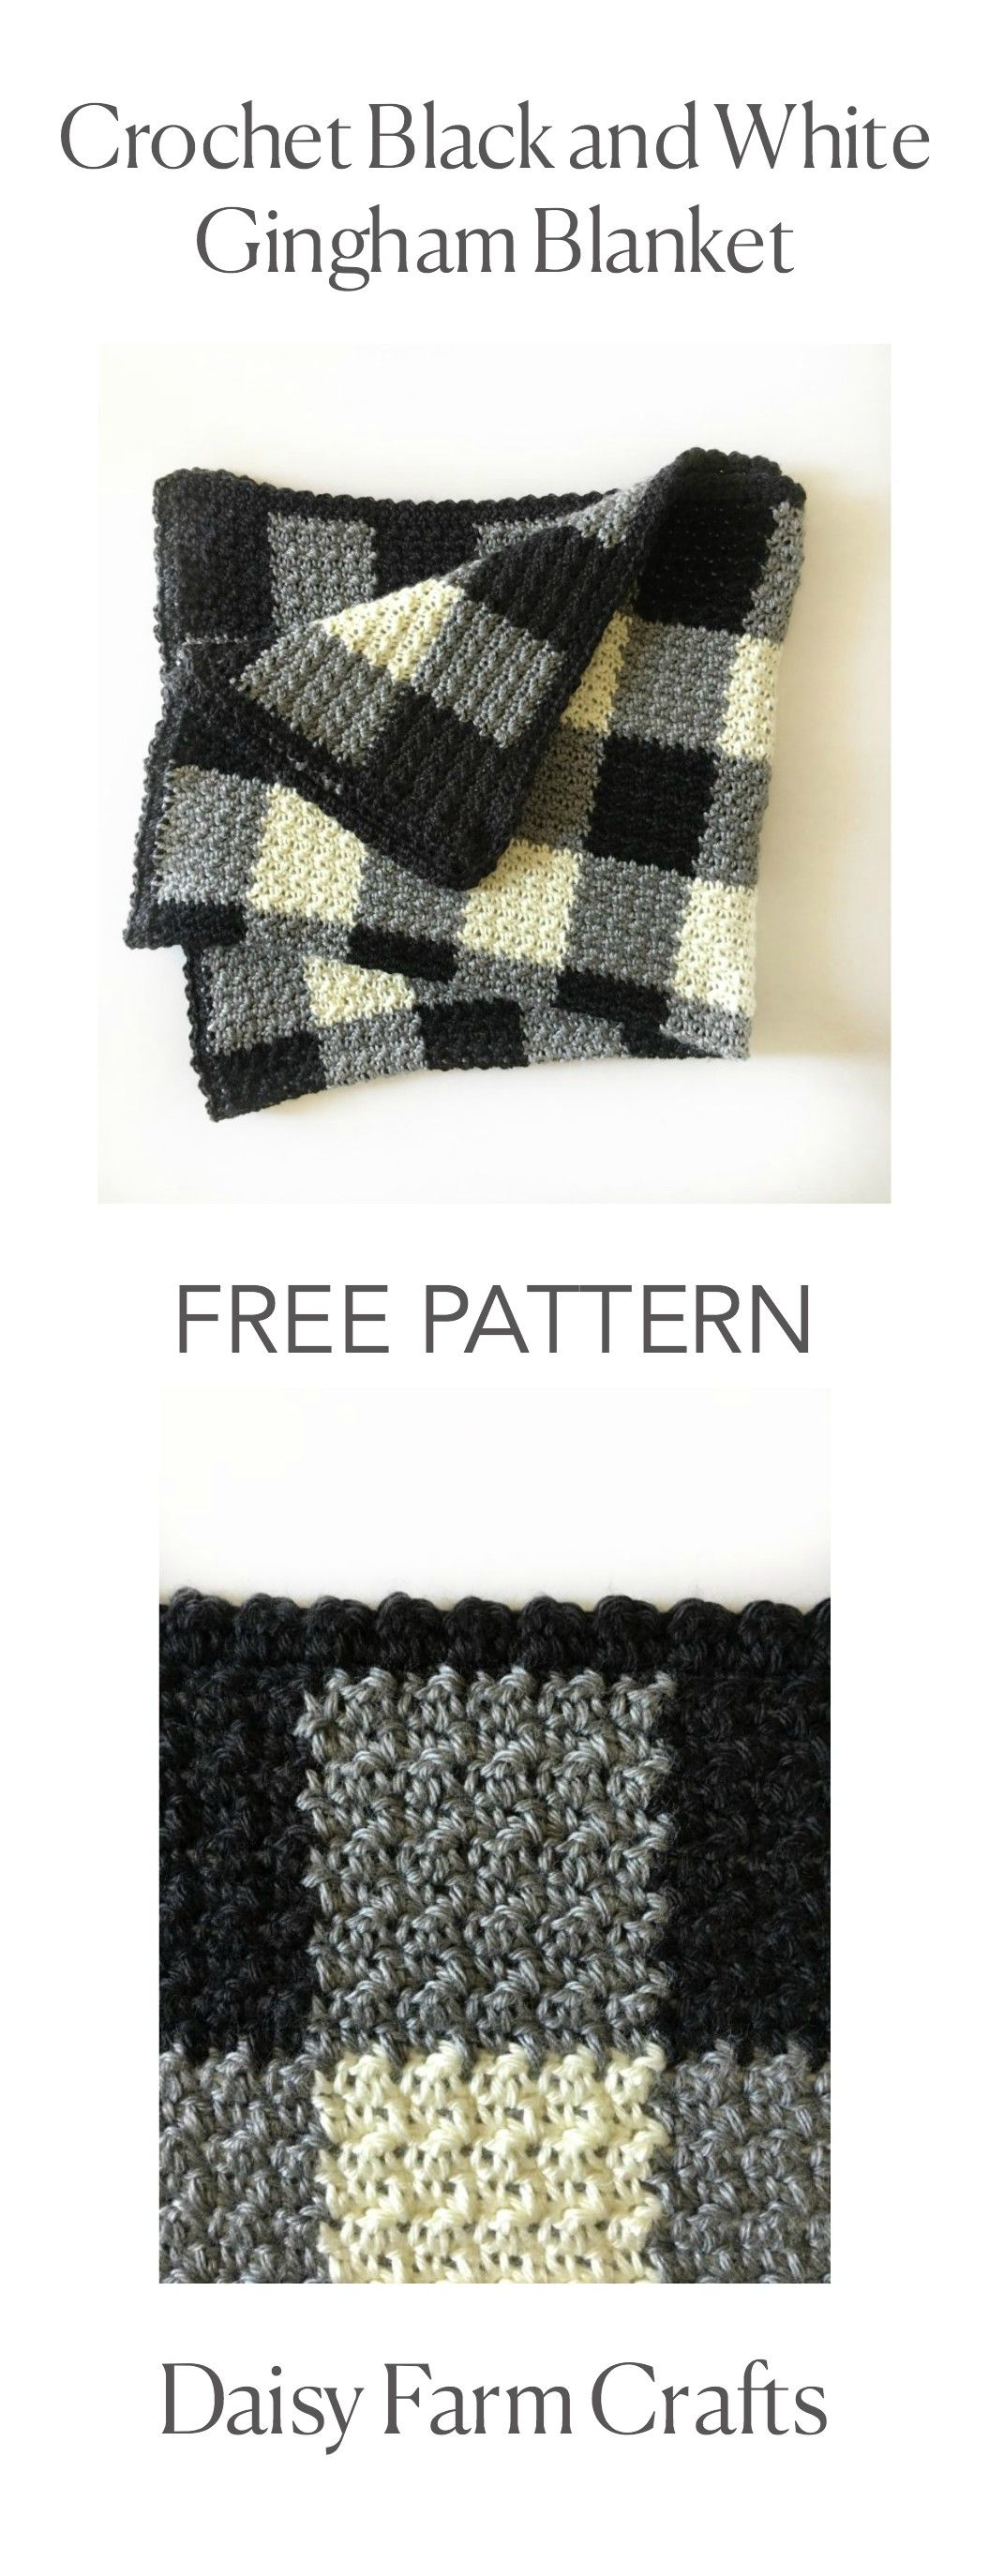 FREE PATTERN - Crochet Black and White Gingham Blanket | Chalecos ...